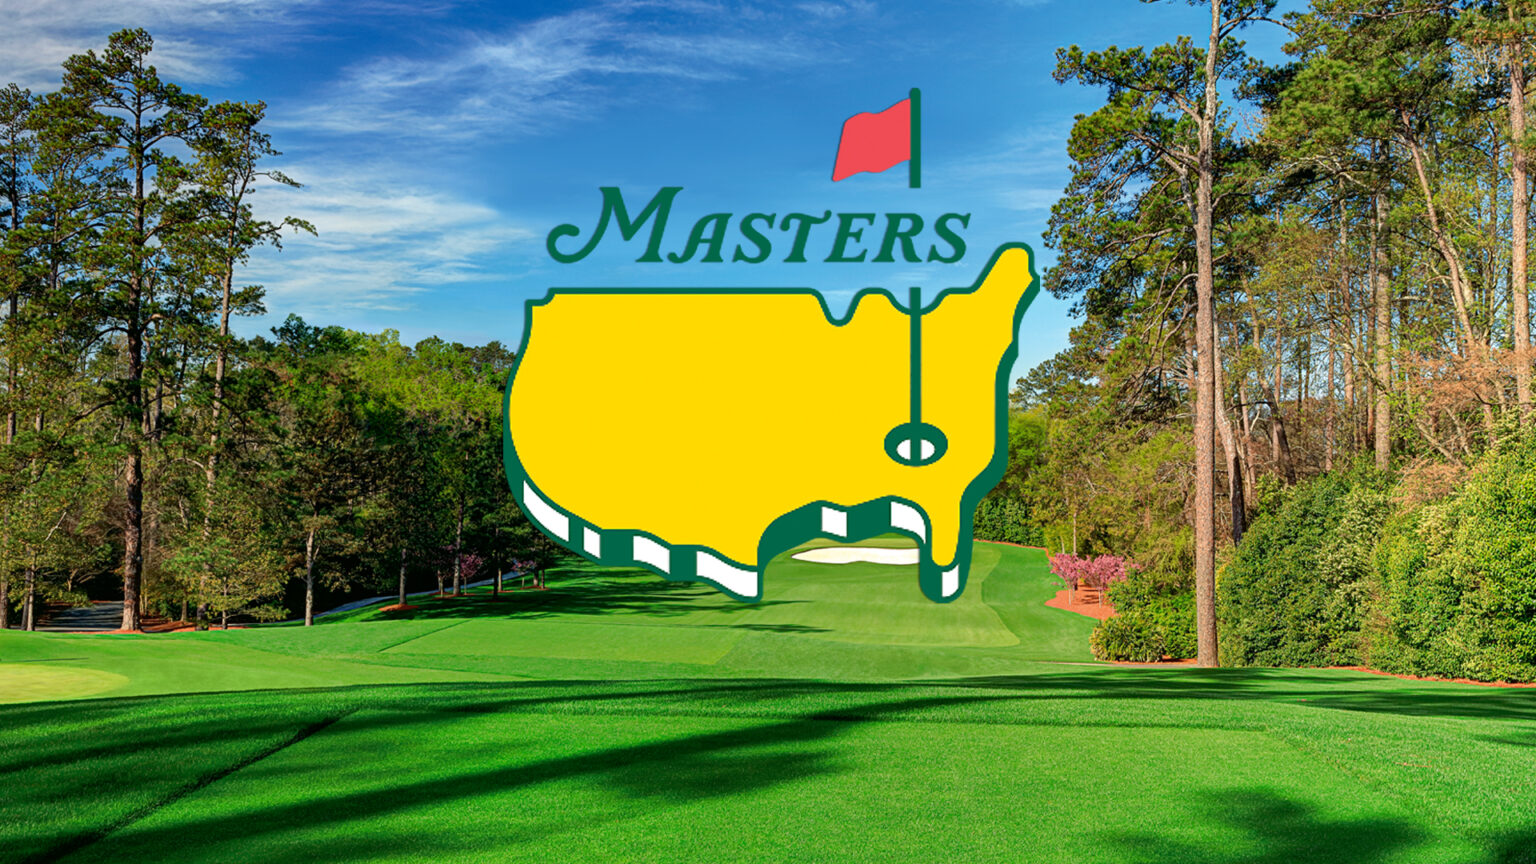 THE MASTERS LIVE